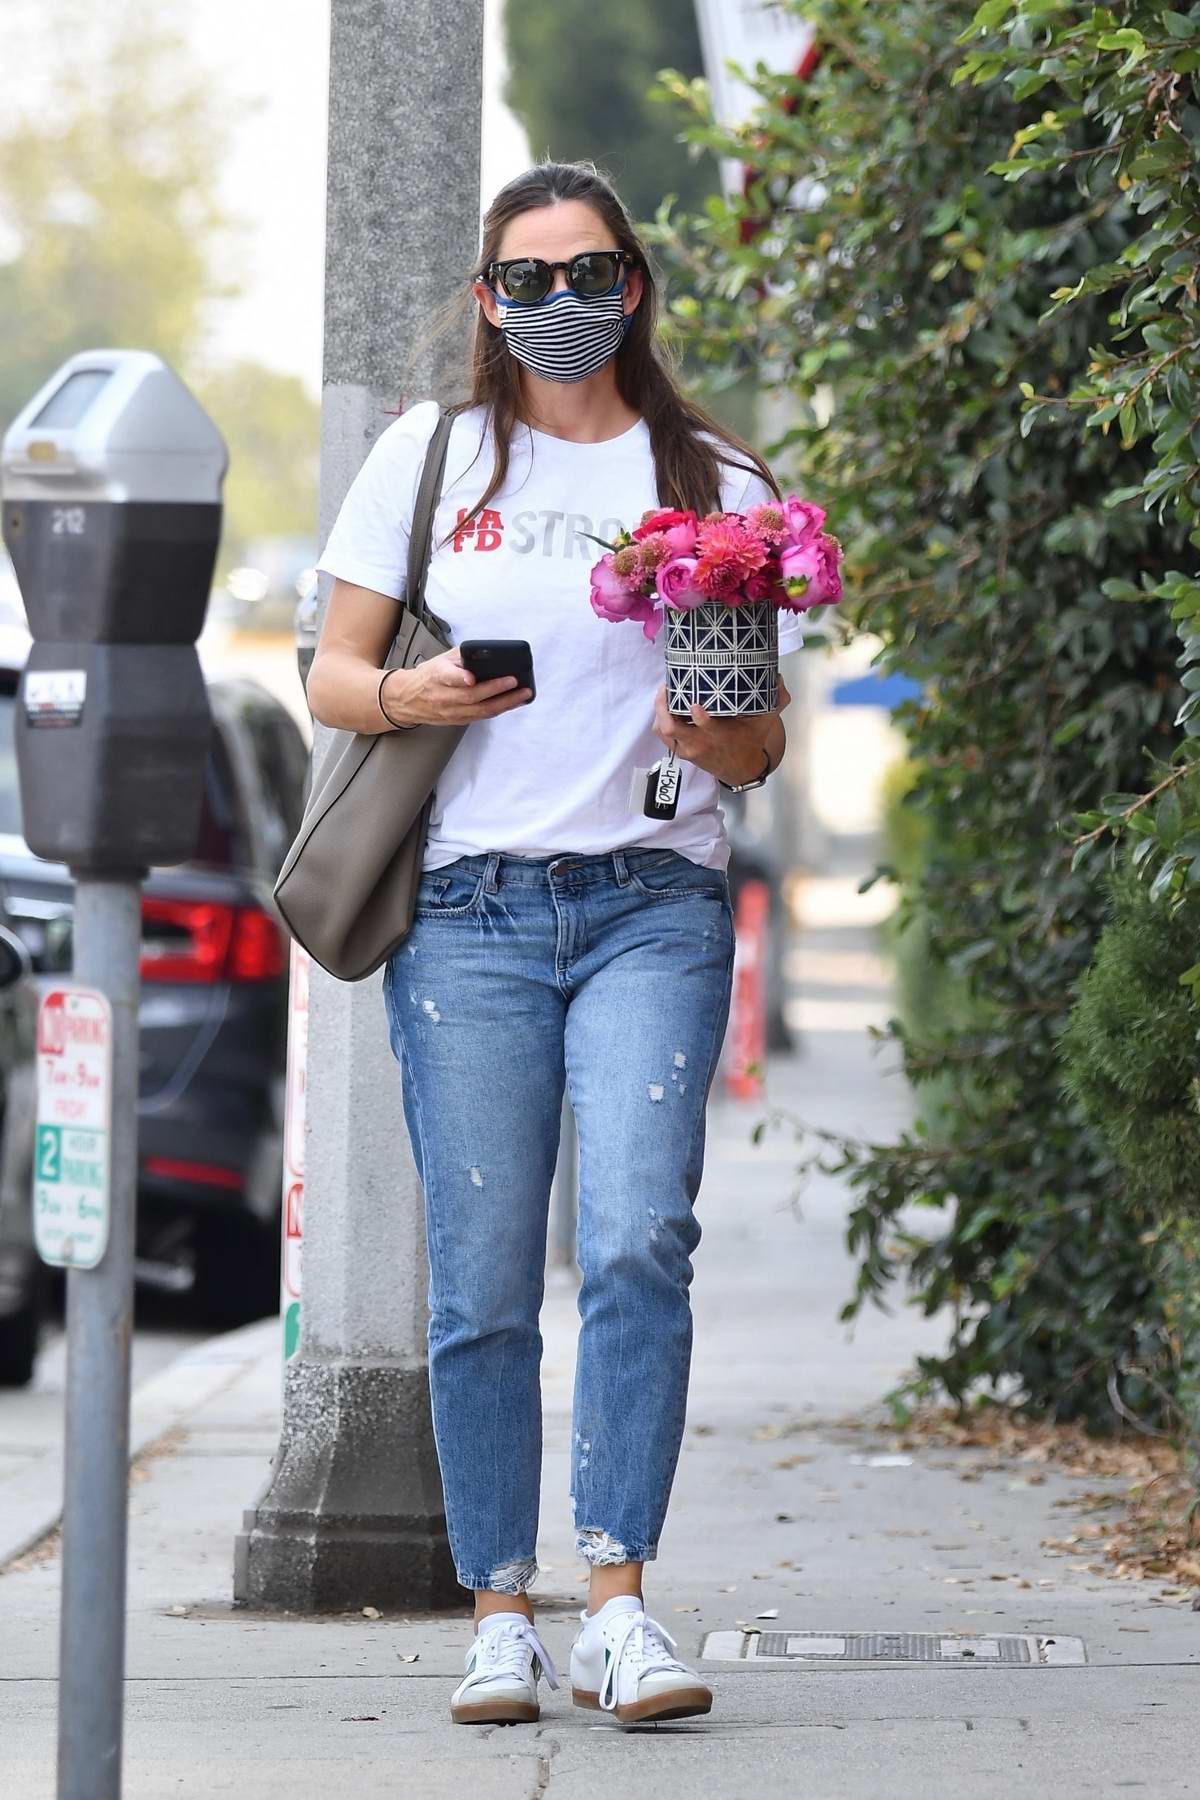 Jennifer Garner brings a small bouquet of flowers to her friend's new office in Brentwood, California